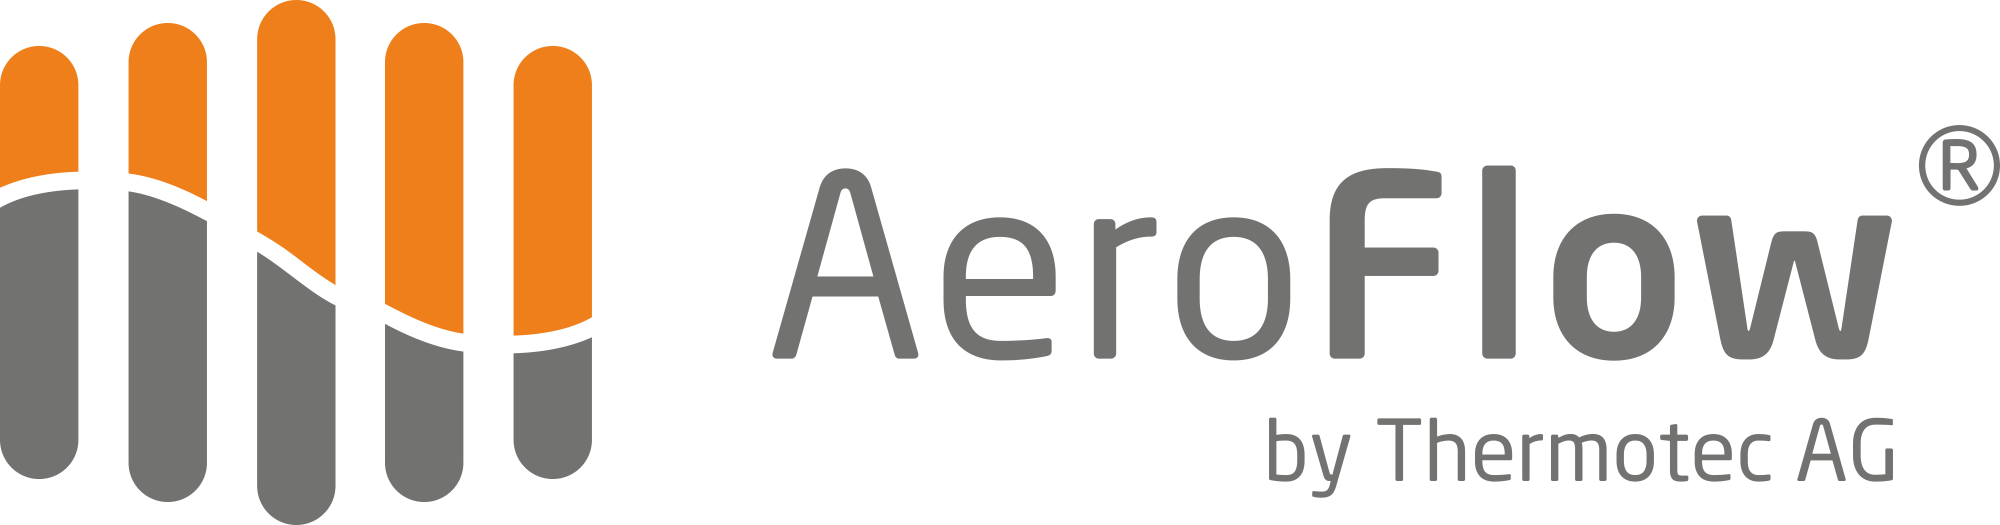 AeroFlow-by-Thermotec.png